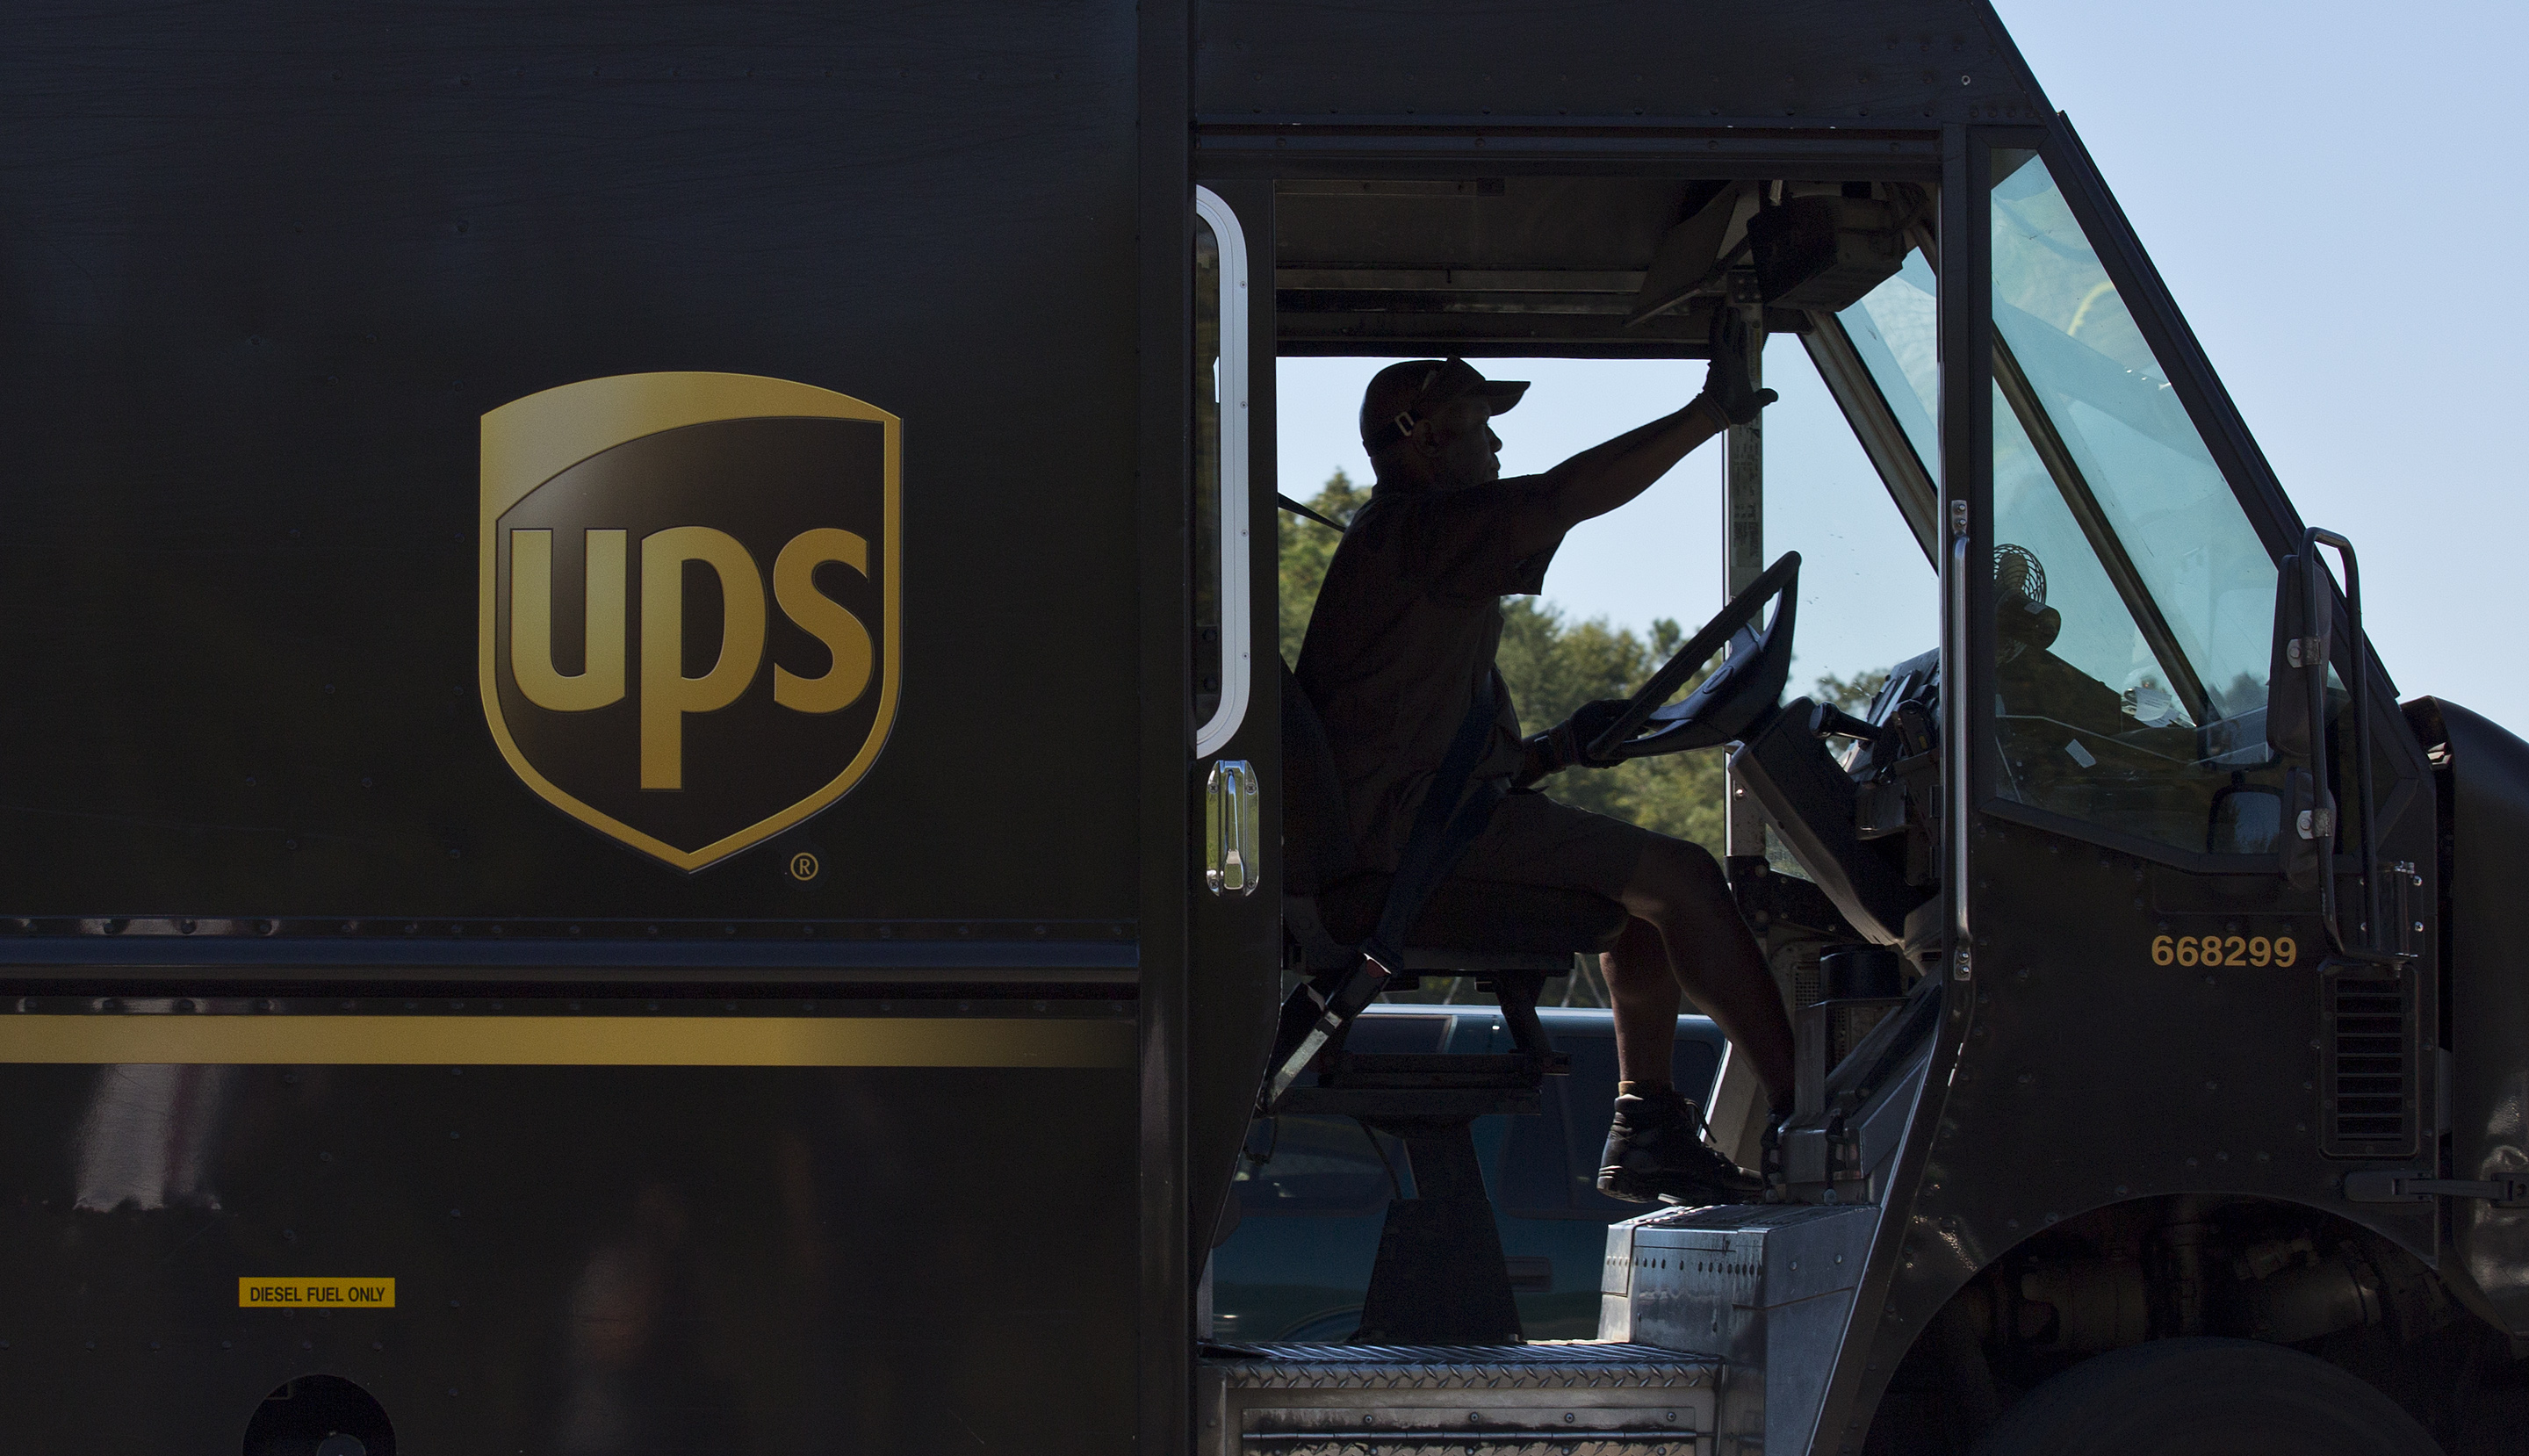 FILE - In this Sept. 23, 2014 file photo, a United Parcel Service (UPS) truck driver enters a company warehouse in Birmingham, Ala. UPS reports quarterly financial results before the market opens on Tuesday, Oct. 27, 2015. (AP Photo/Brynn Anderson, File)